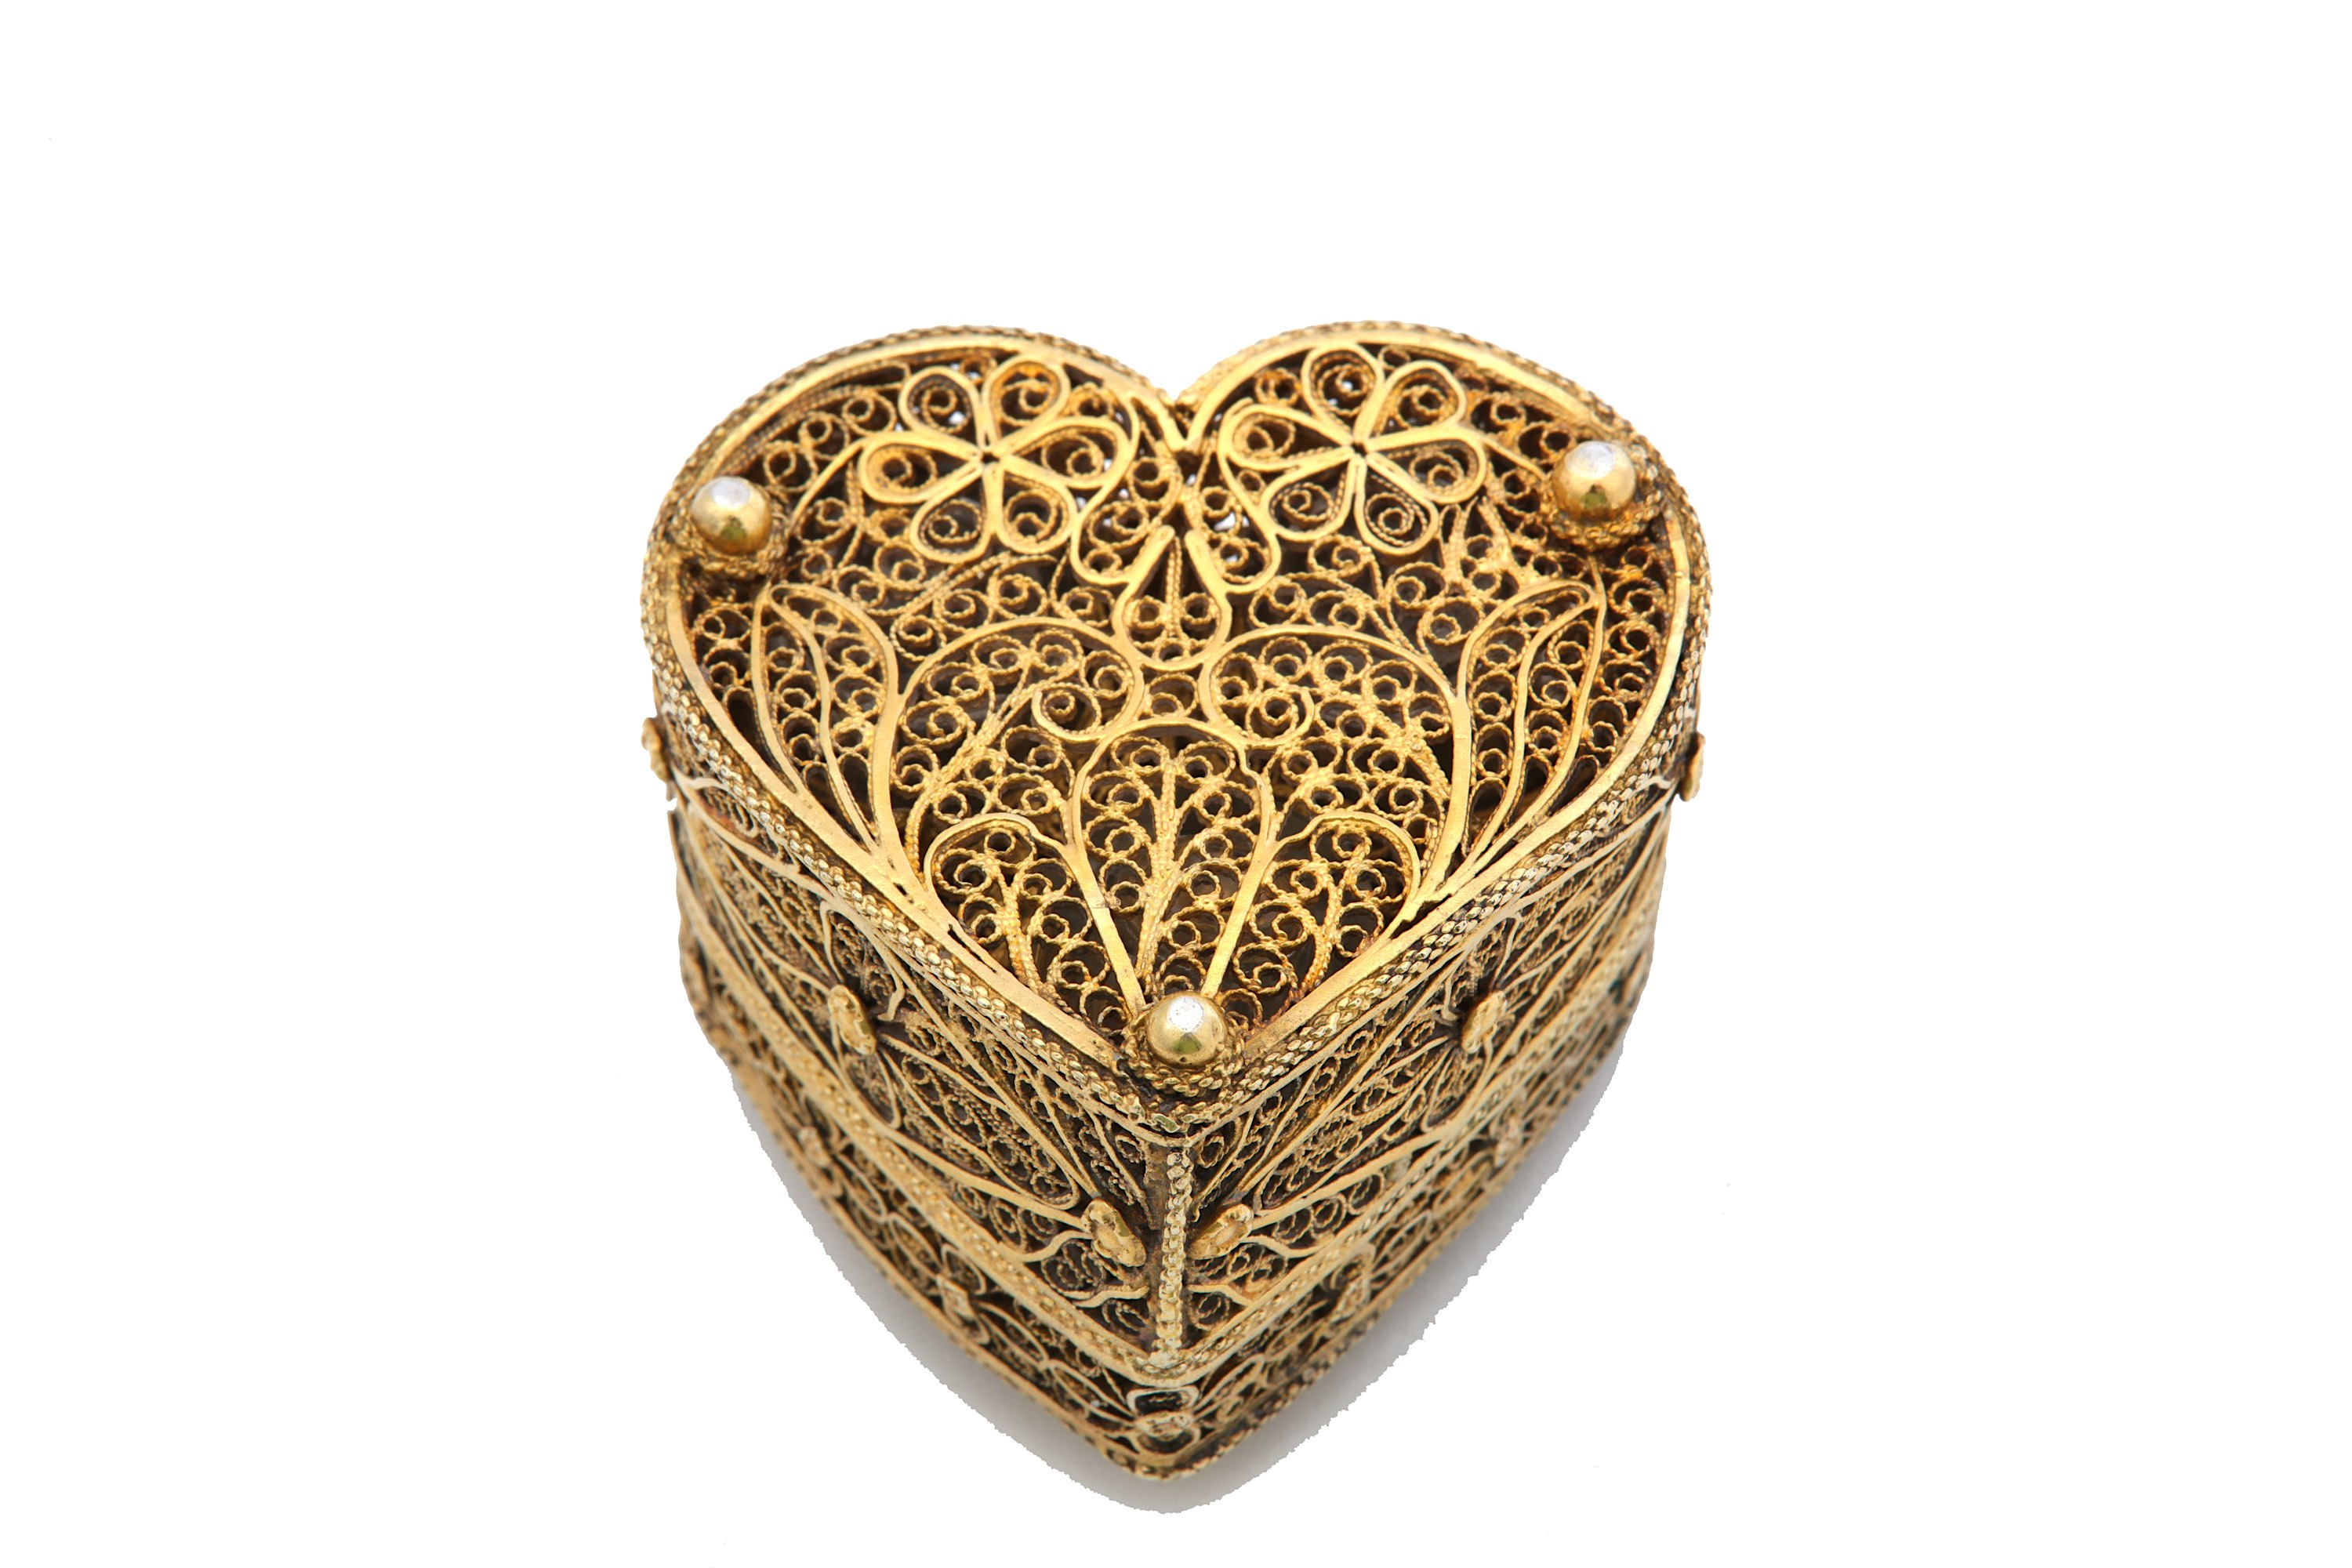 Lot 31 - A 19th century Continental silver-gilt filigree heart-shaped box, unmarked, possibly Portuguese